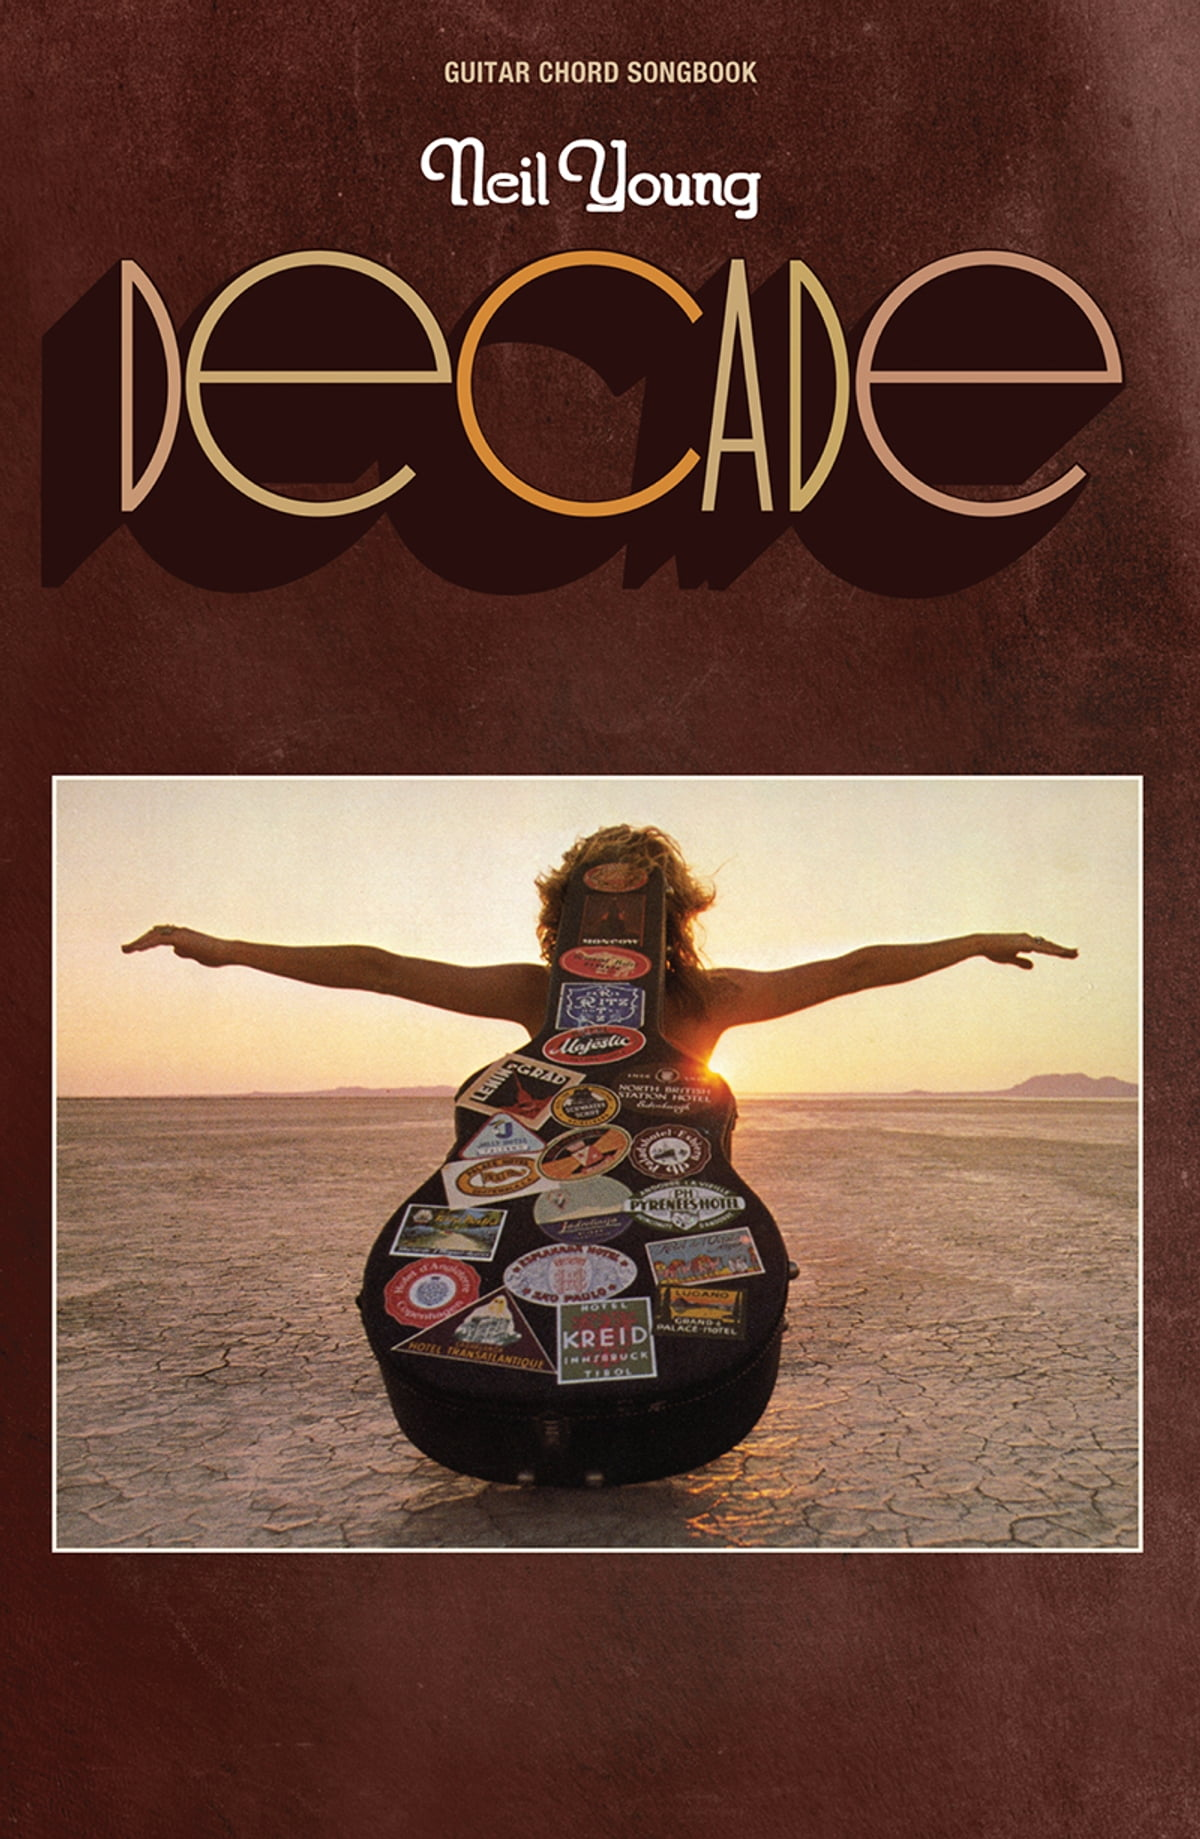 Neil Young Decade Guitar Chord Songbook Ebook By Neil Young